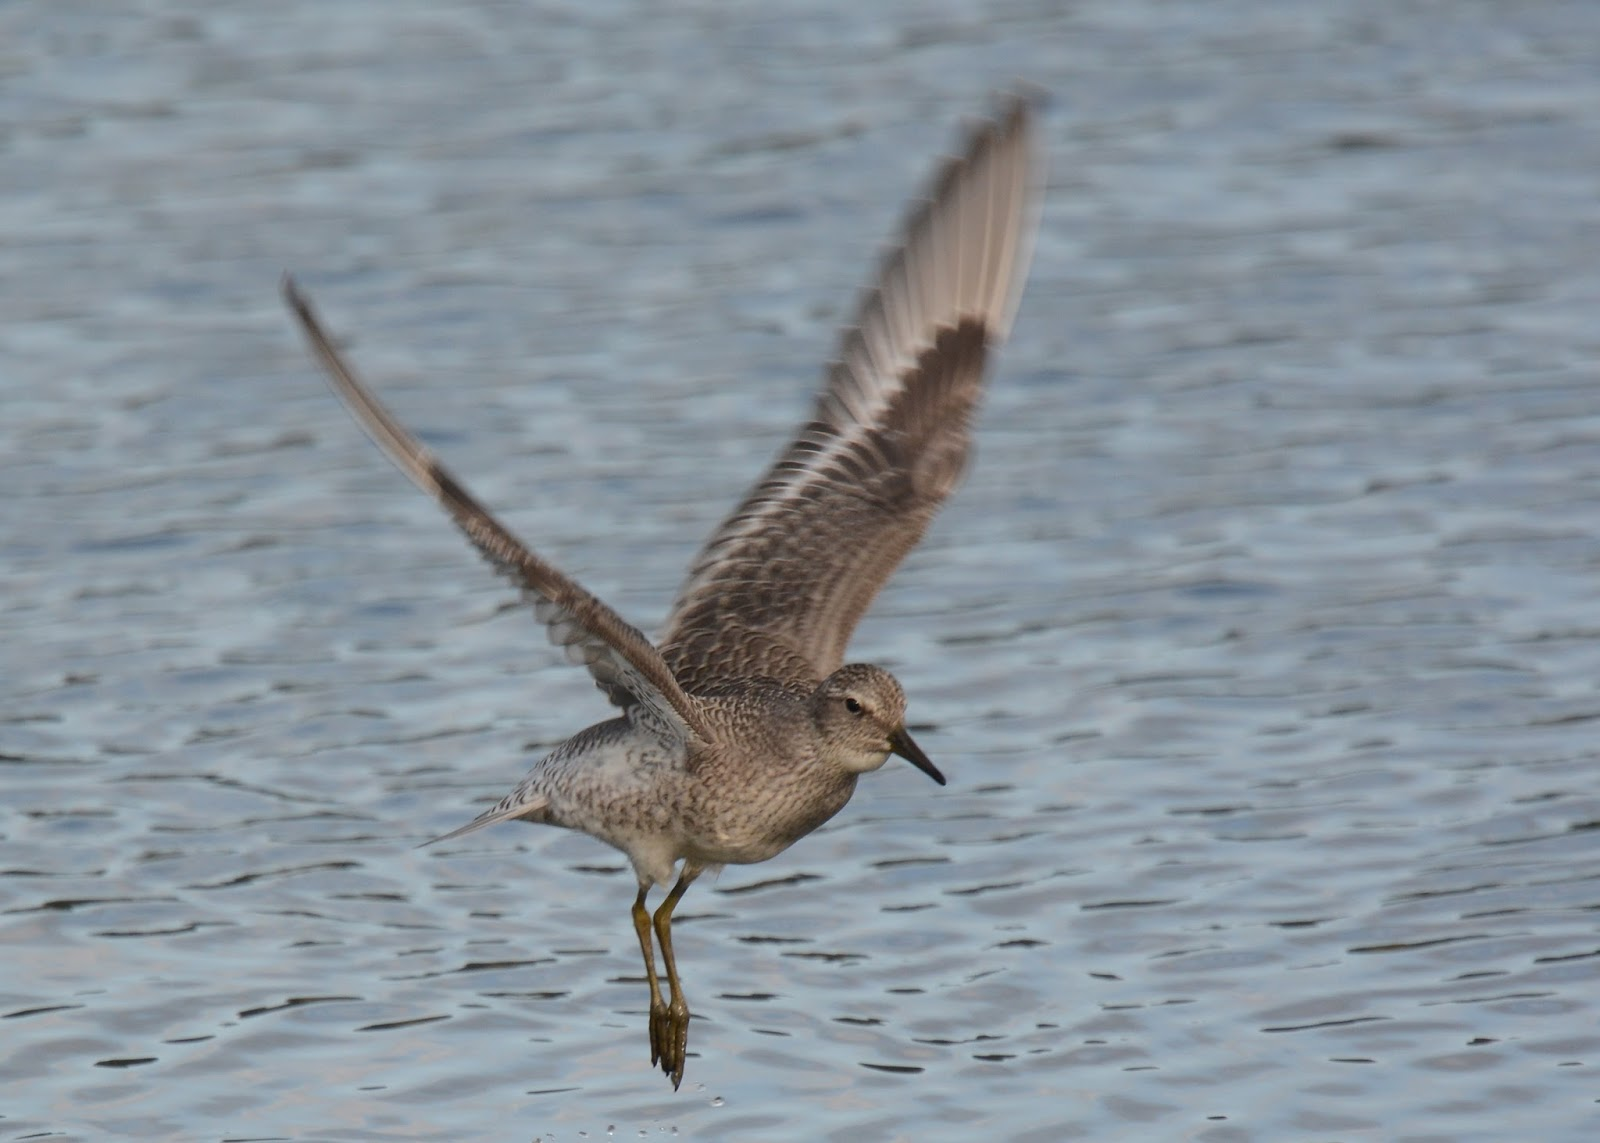 Bicycle Birder On The Axe: A Quieter Day On BHM But With A ...